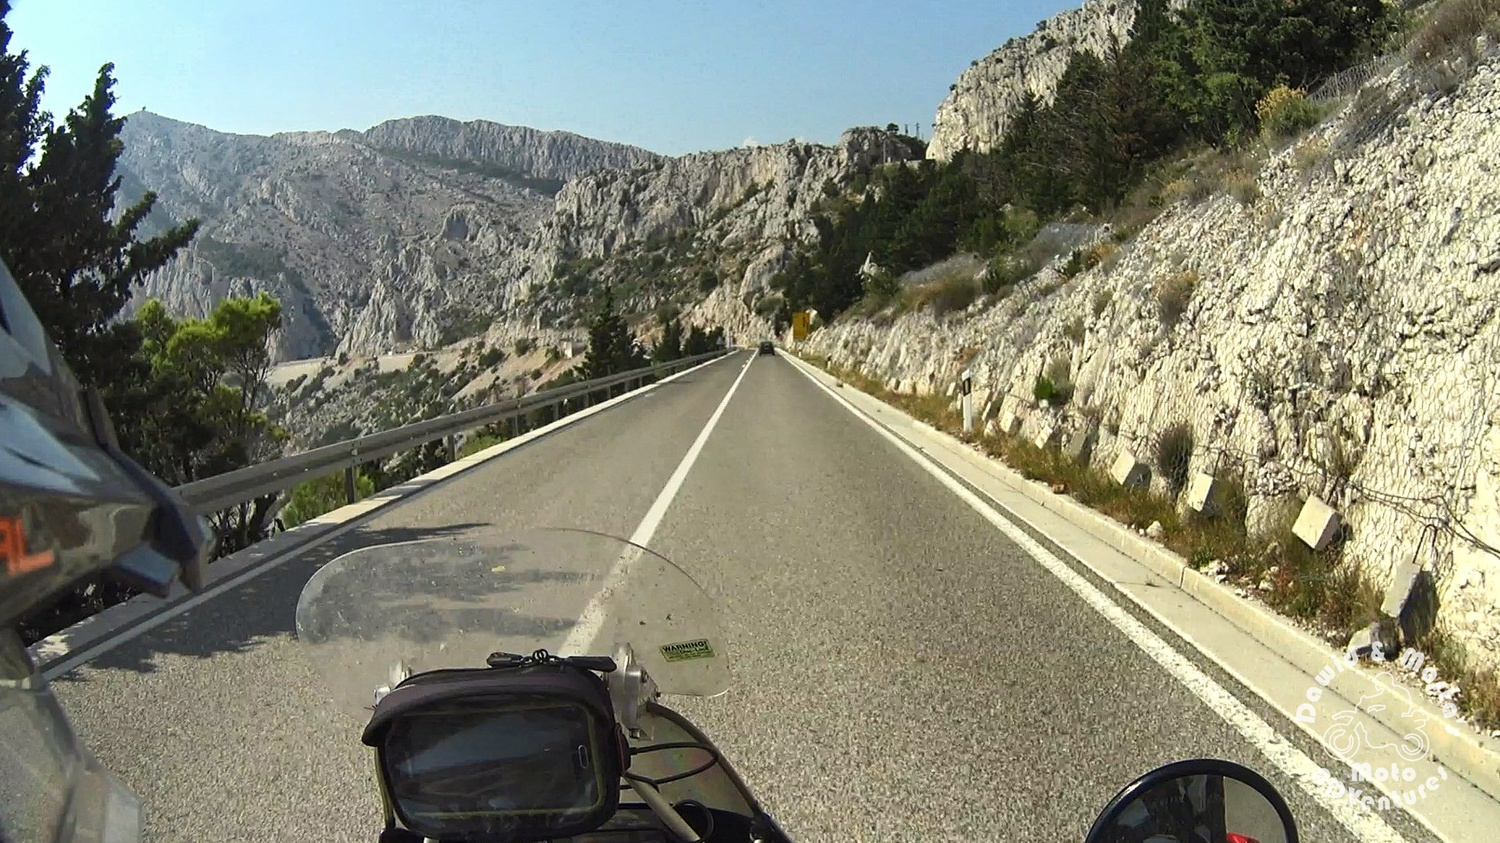 Riding down the Cesta Domovinskog Rata in Croatia to Adriatic Highway